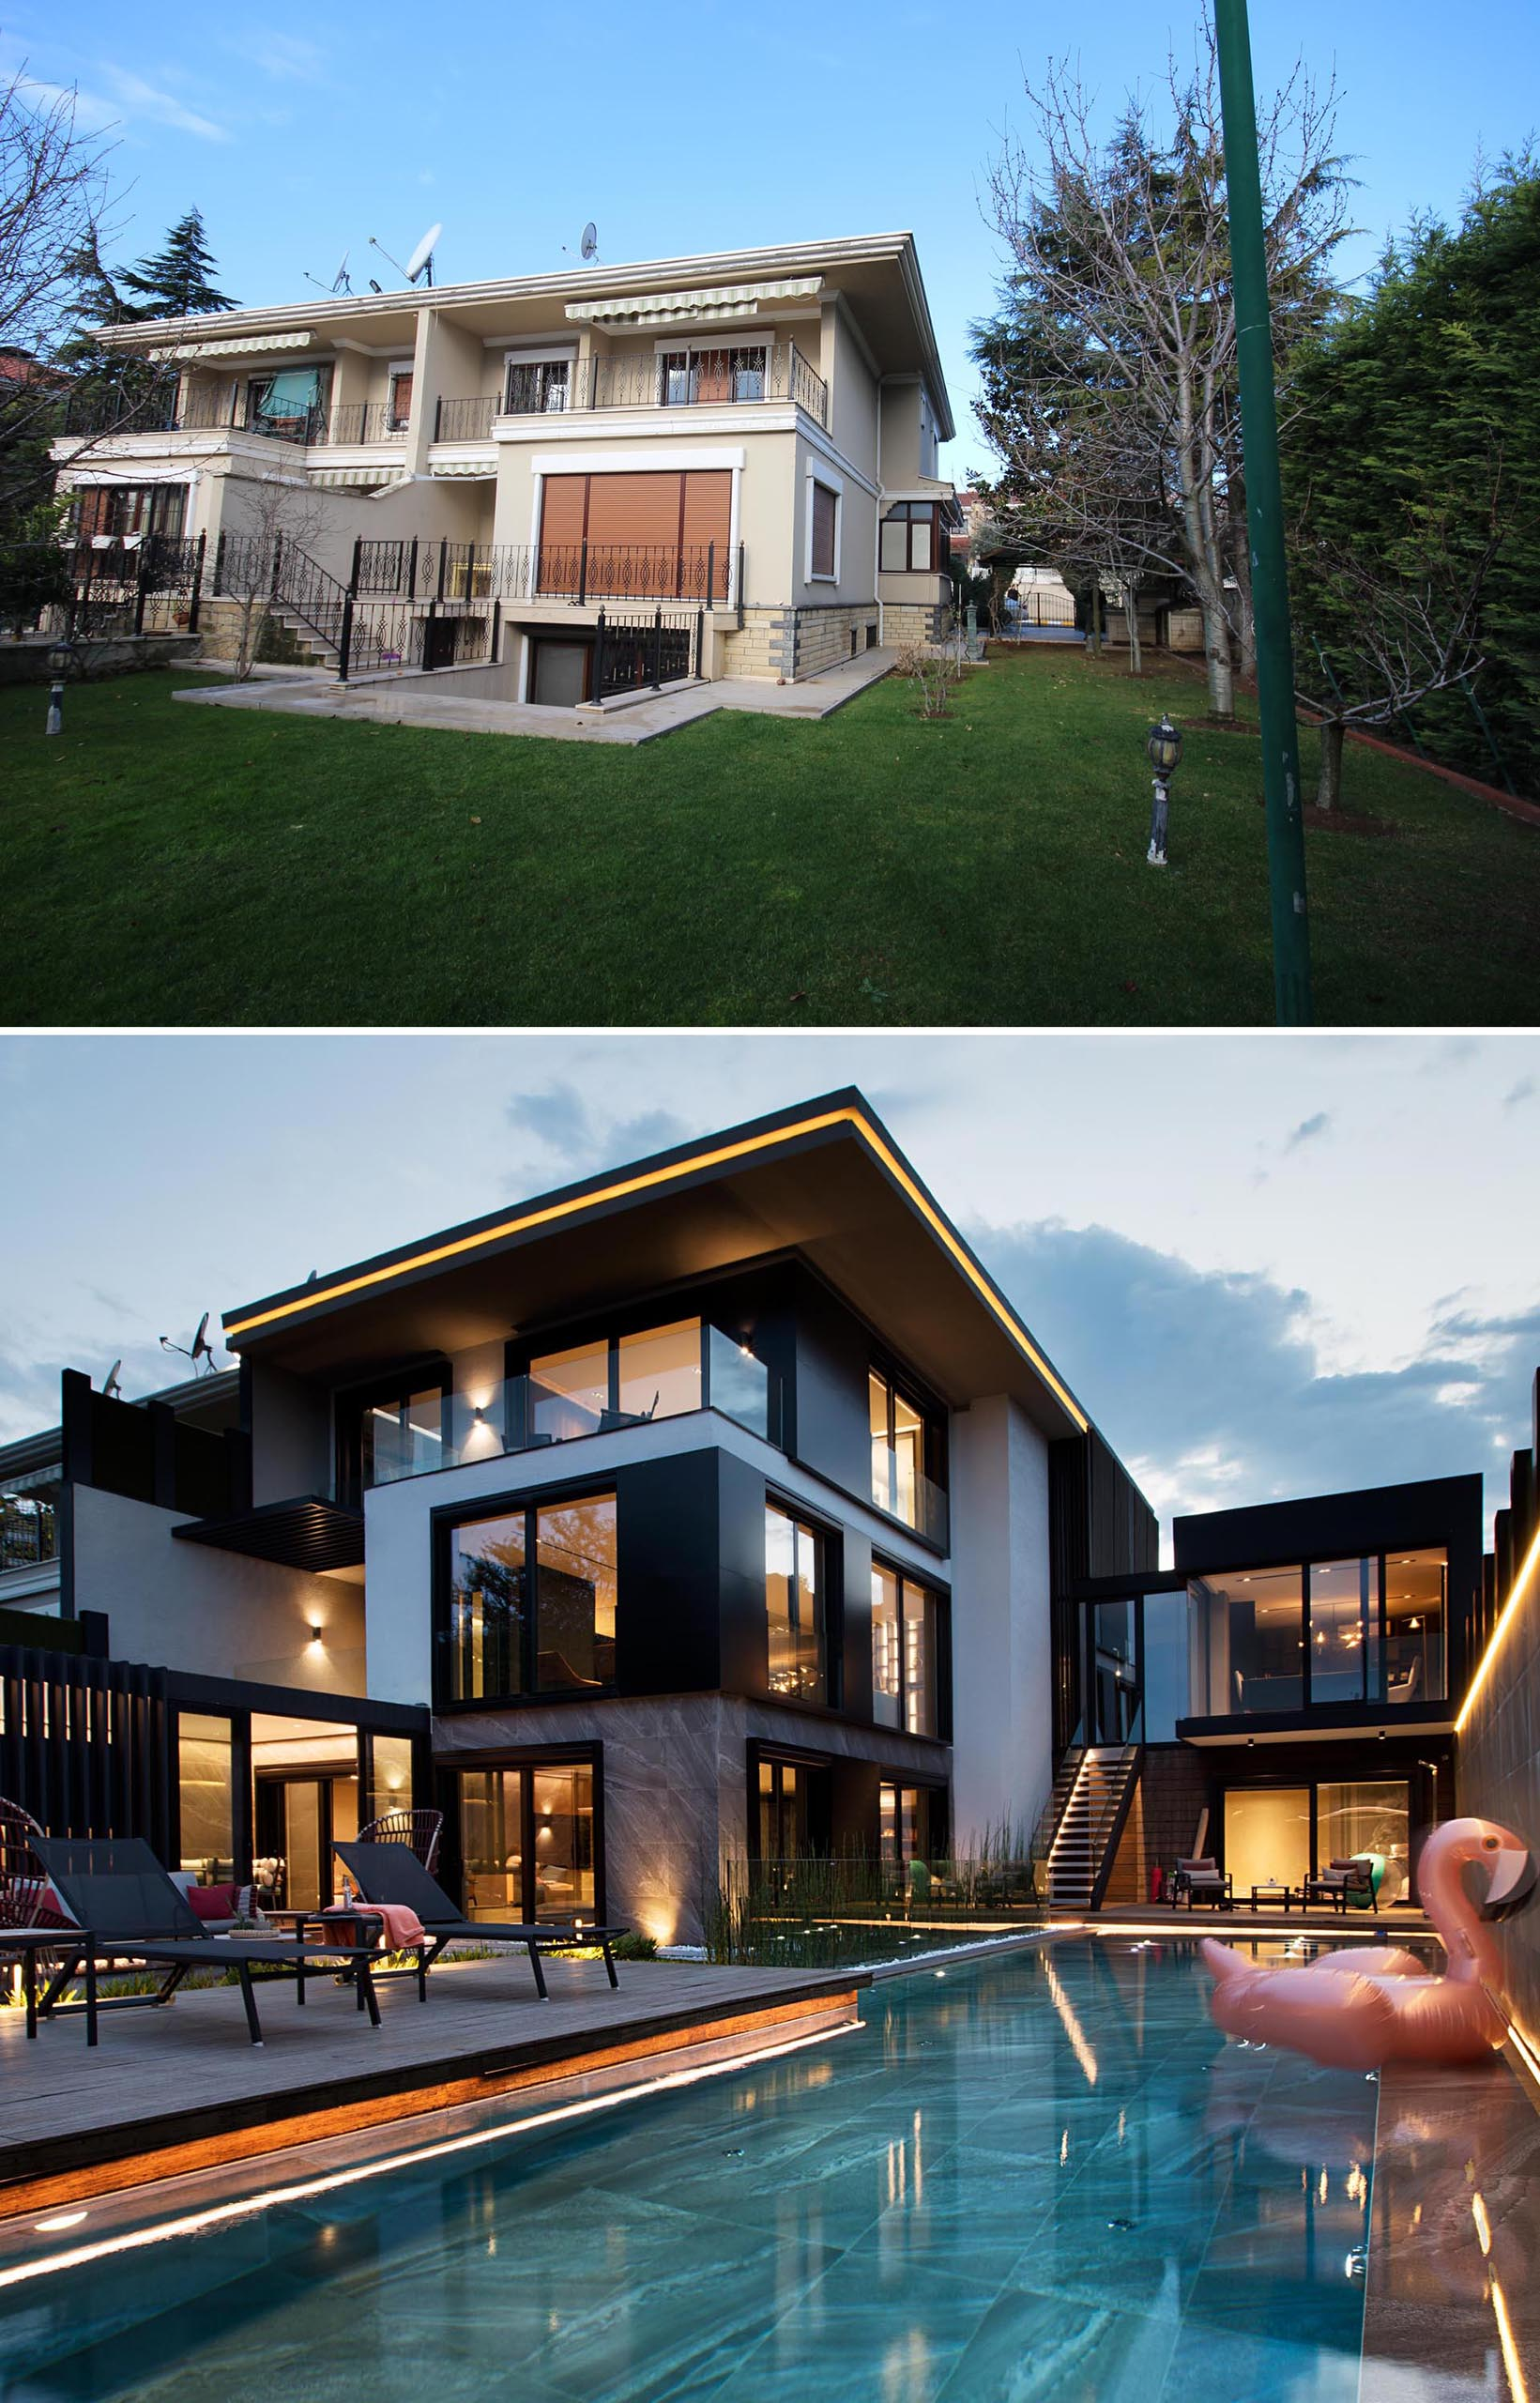 A modern house and yard renovation.